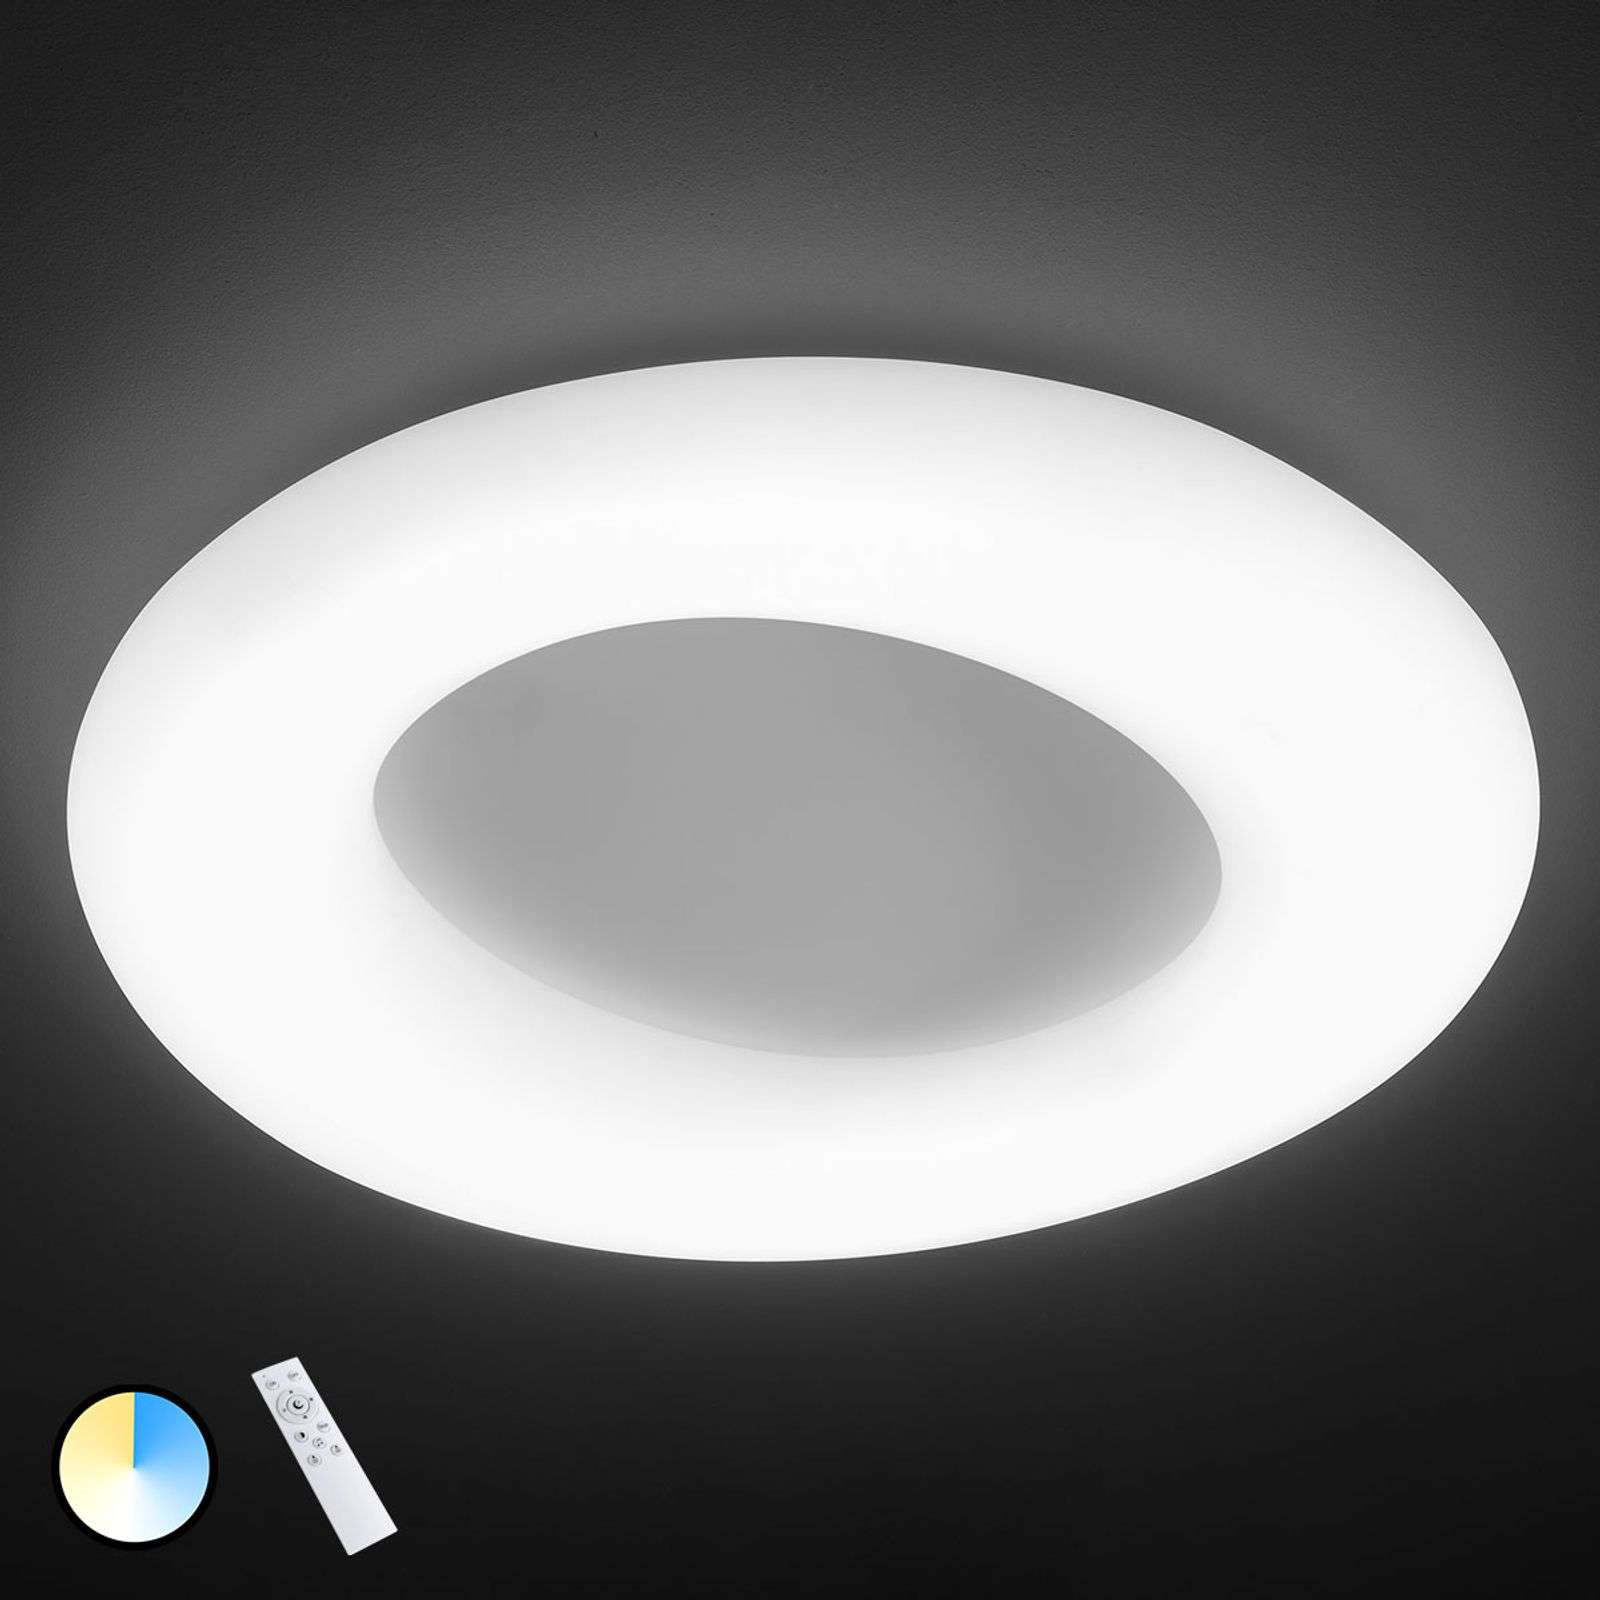 Lámpara LED de techo County ajustable, Ø 91 cm